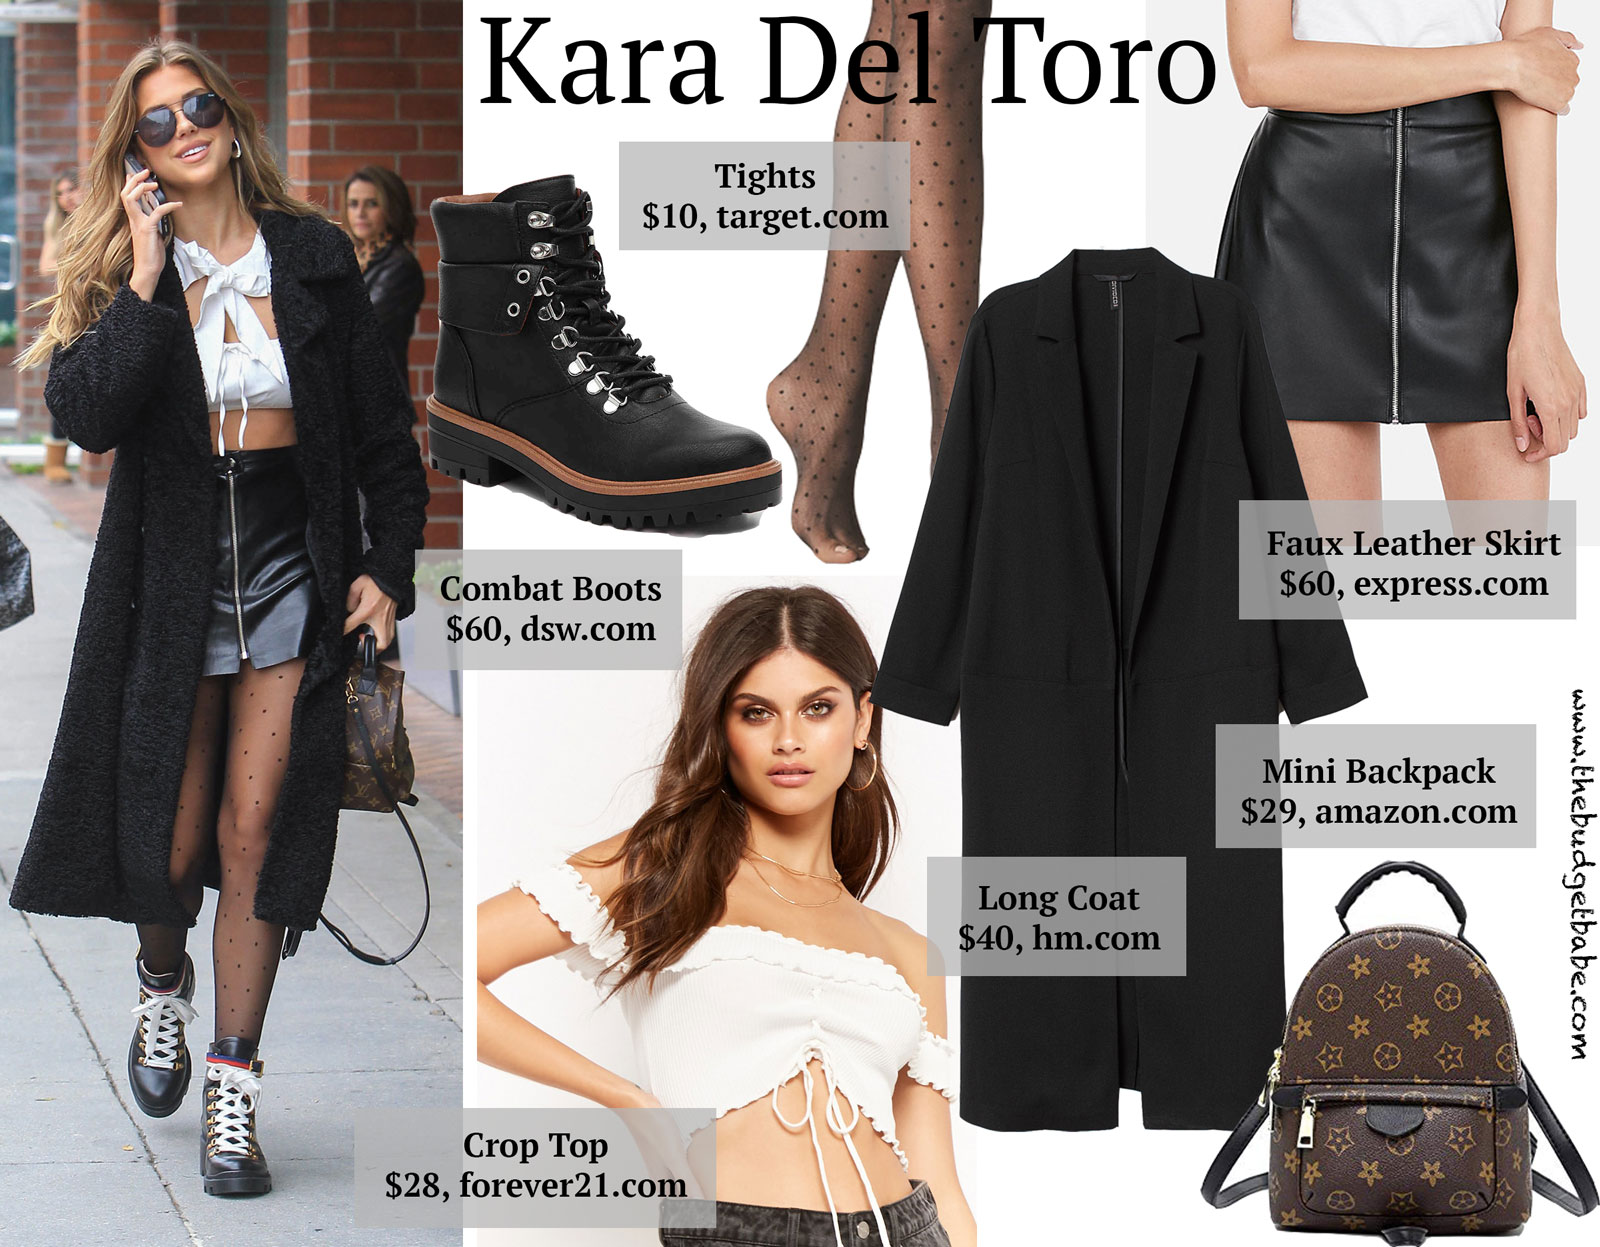 Kara Del Toro Gucci Boots and White Crop Top Look for Less